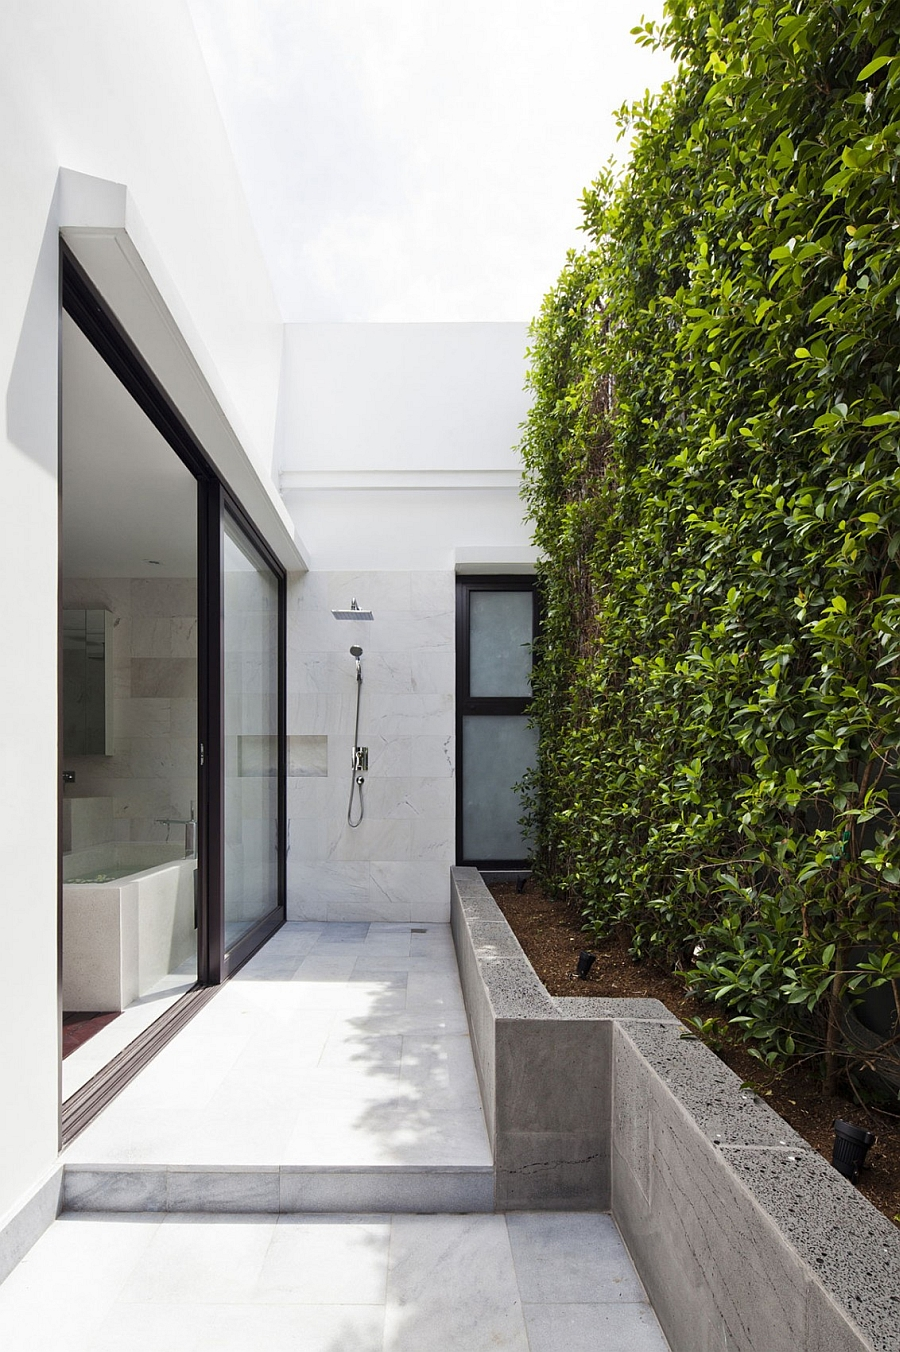 Outdoor shower area with complete privacy